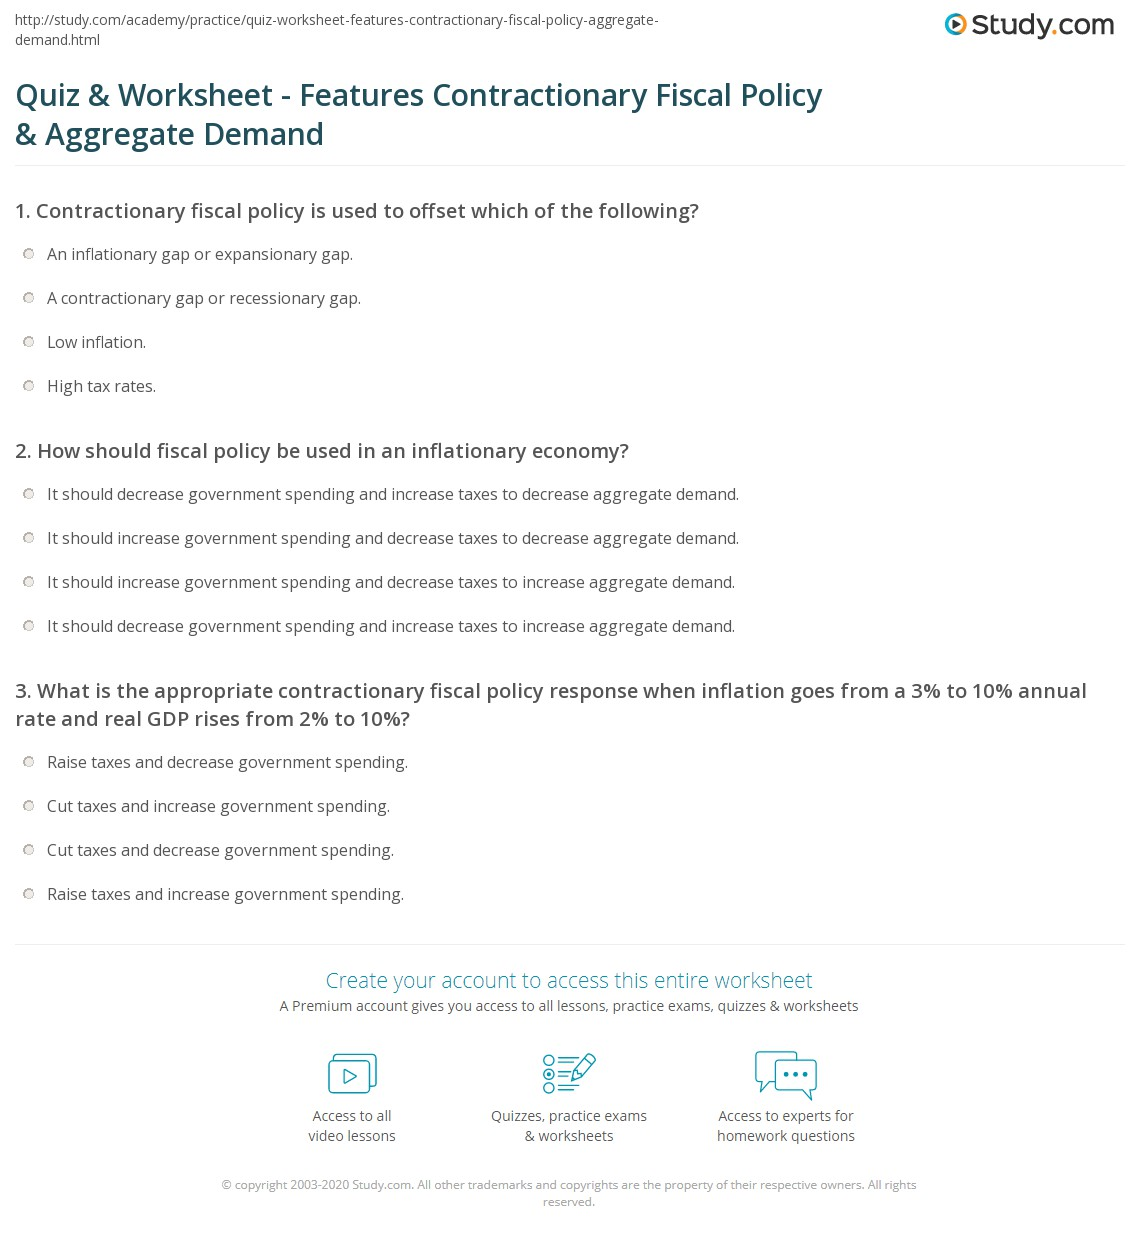 Quiz & Worksheet - Features Contractionary Fiscal Policy ...